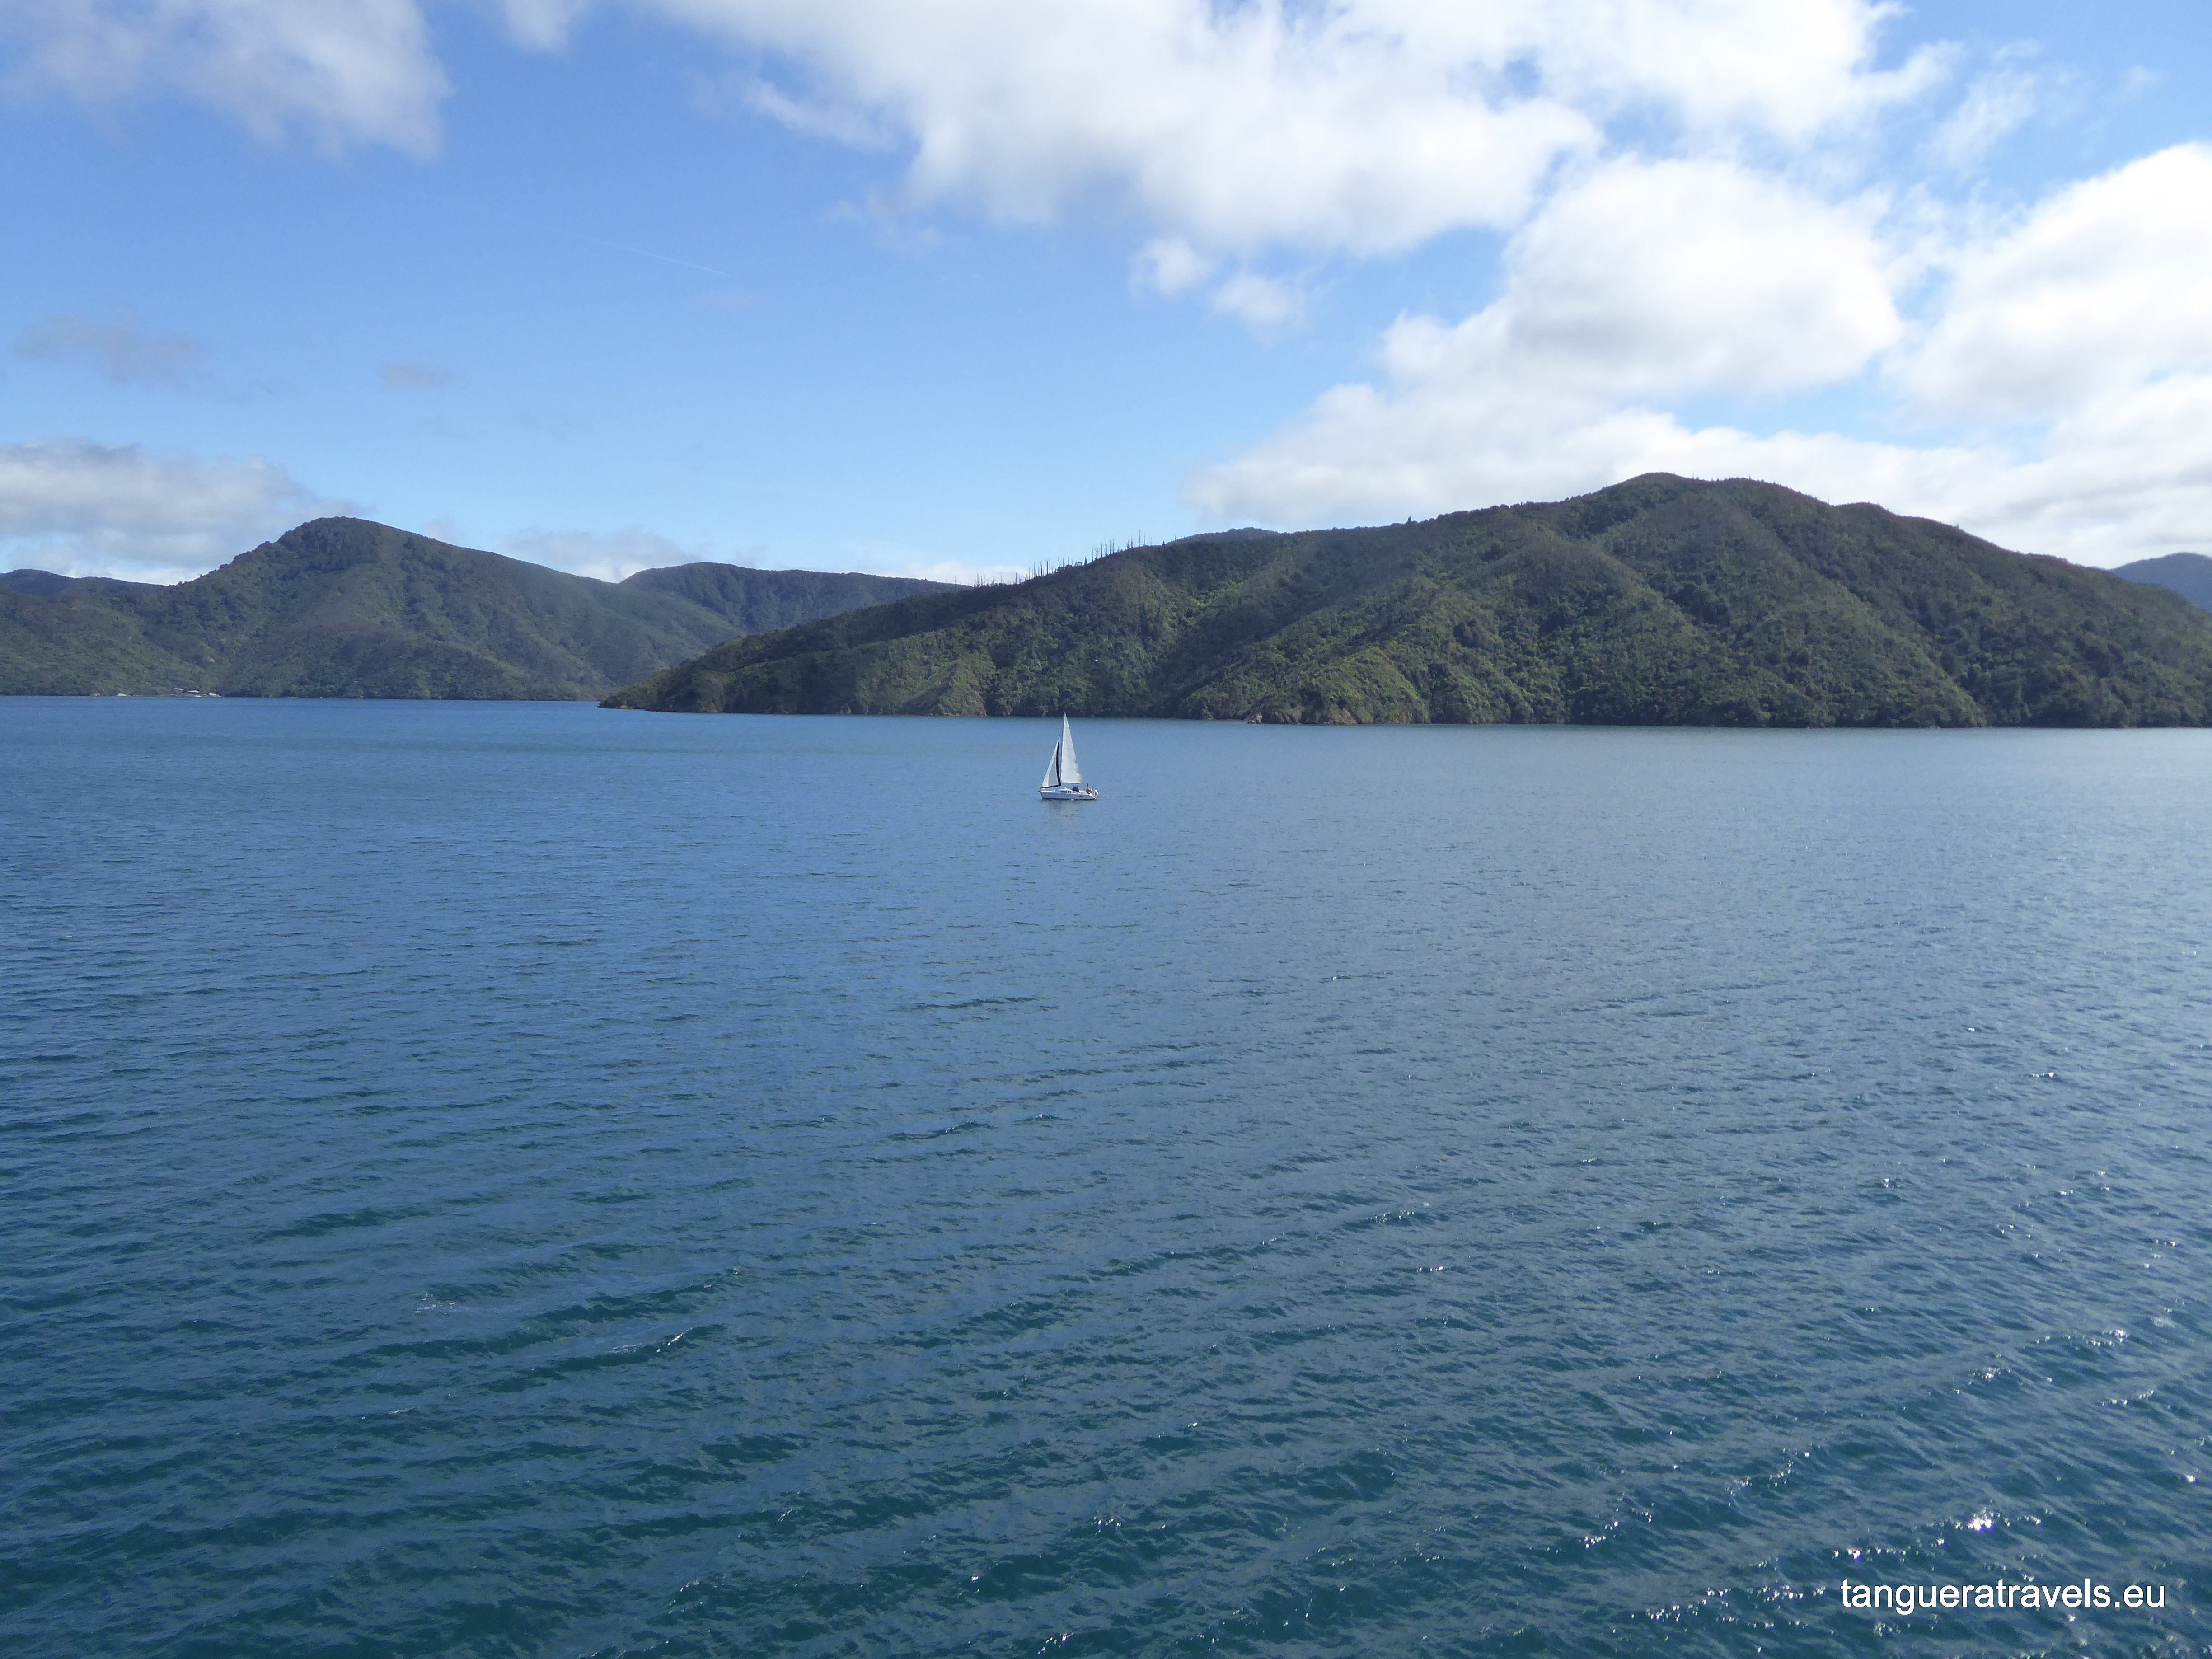 Interislander crossing Picton to Wellington New Zealand